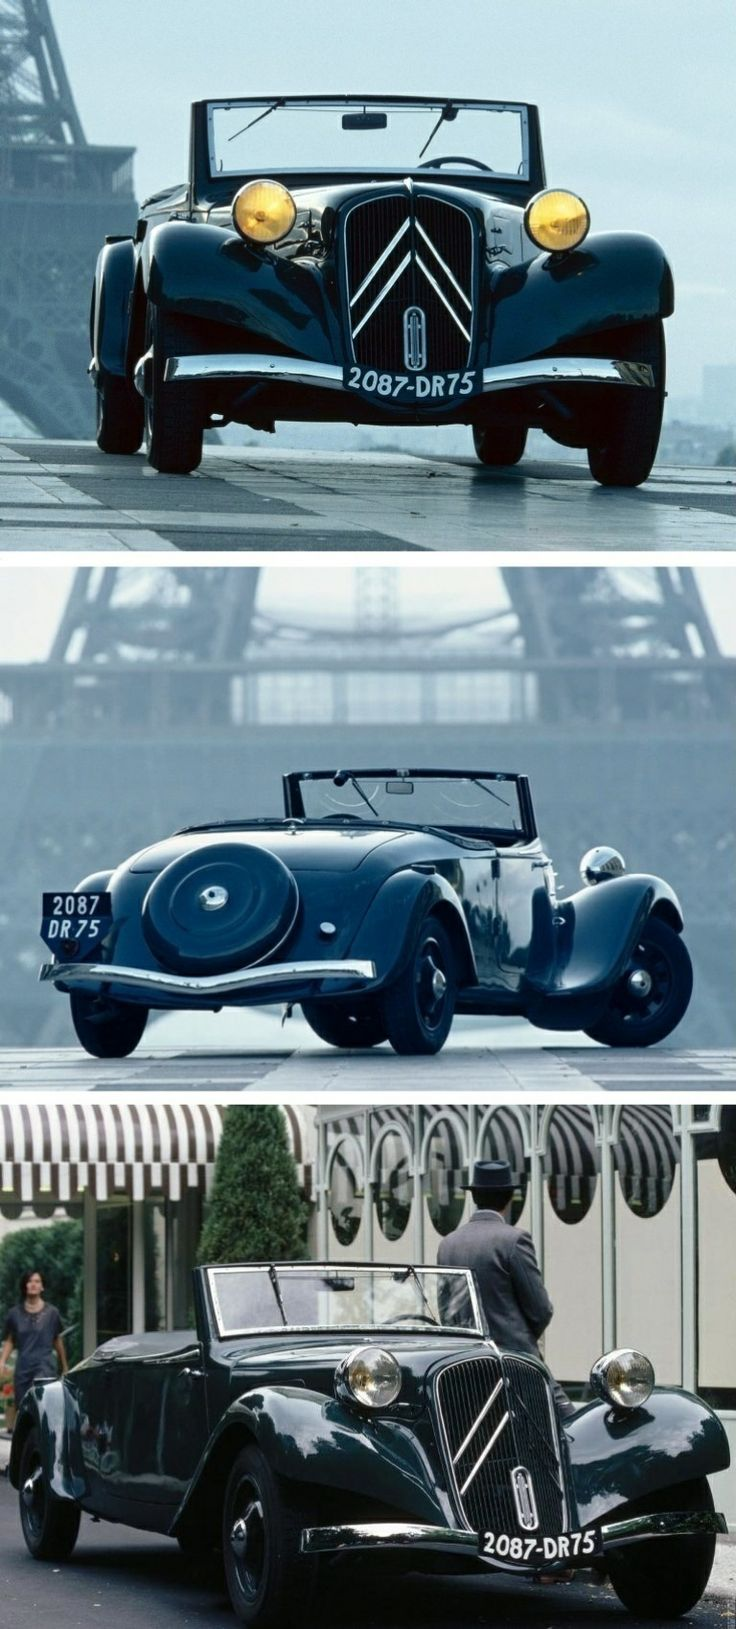 1938 citro n traction avant cabrio one of my favorite cars maybe more than the